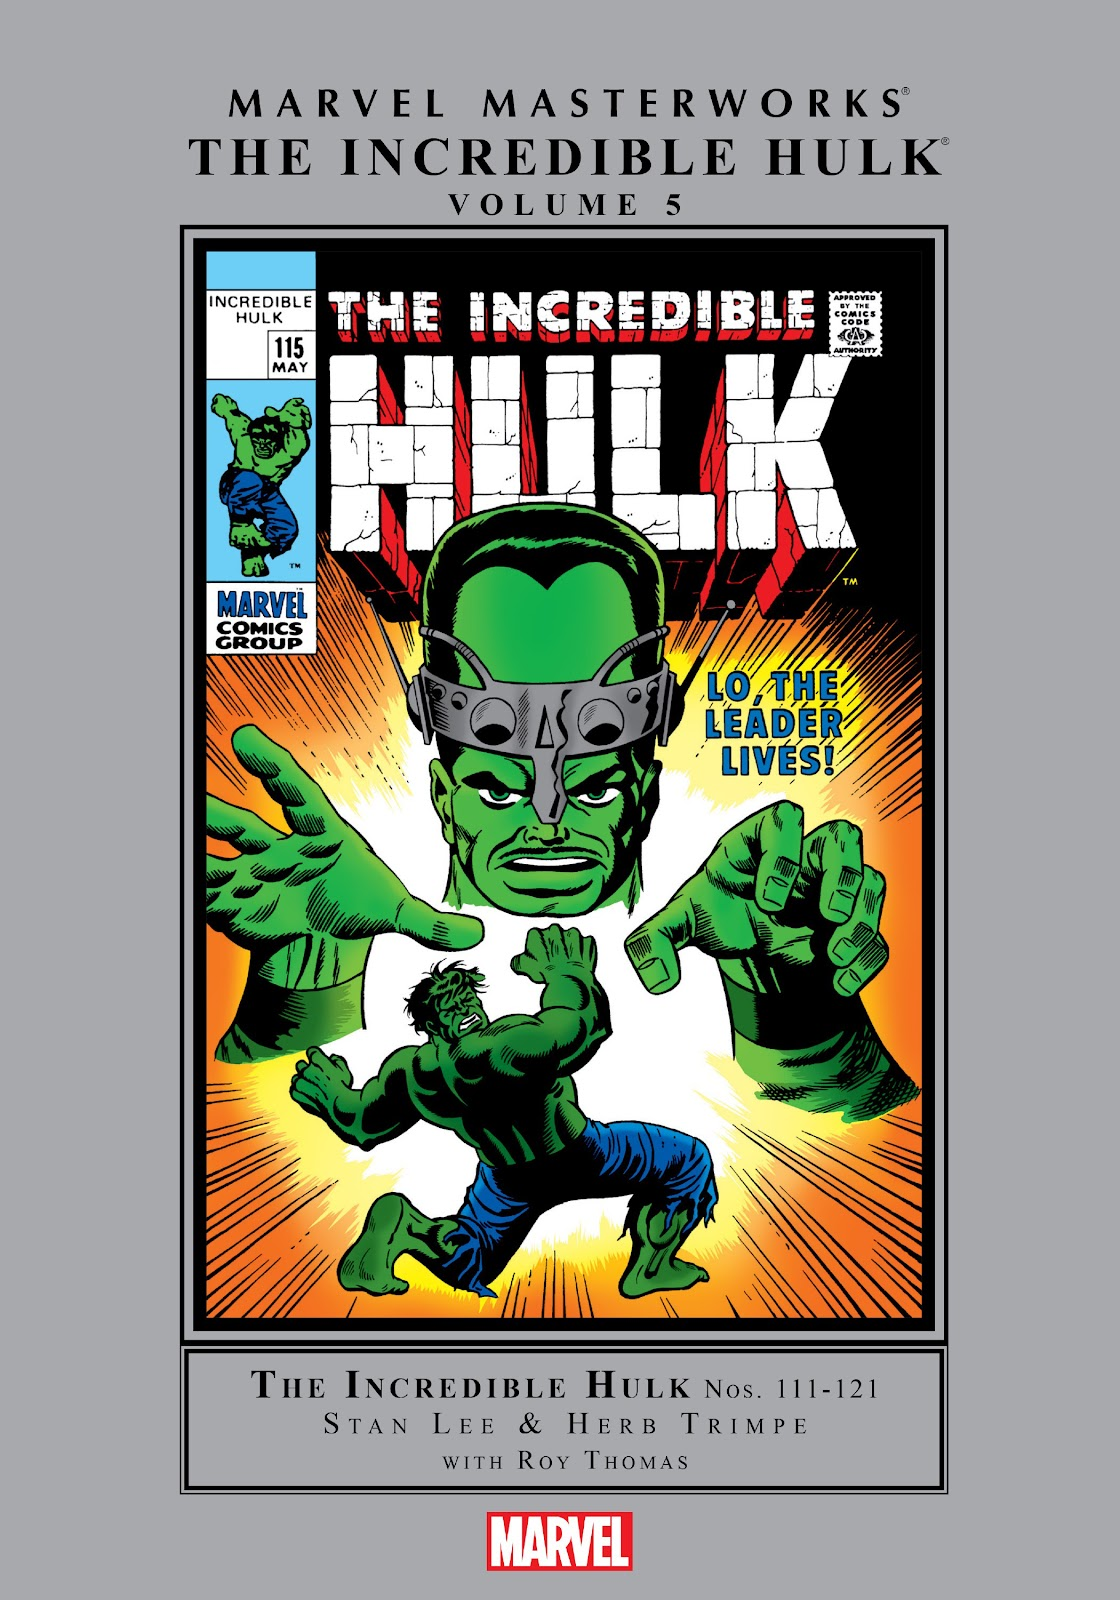 Read online Marvel Masterworks: The Incredible Hulk comic -  Issue # TPB 5 (Part 1) - 1